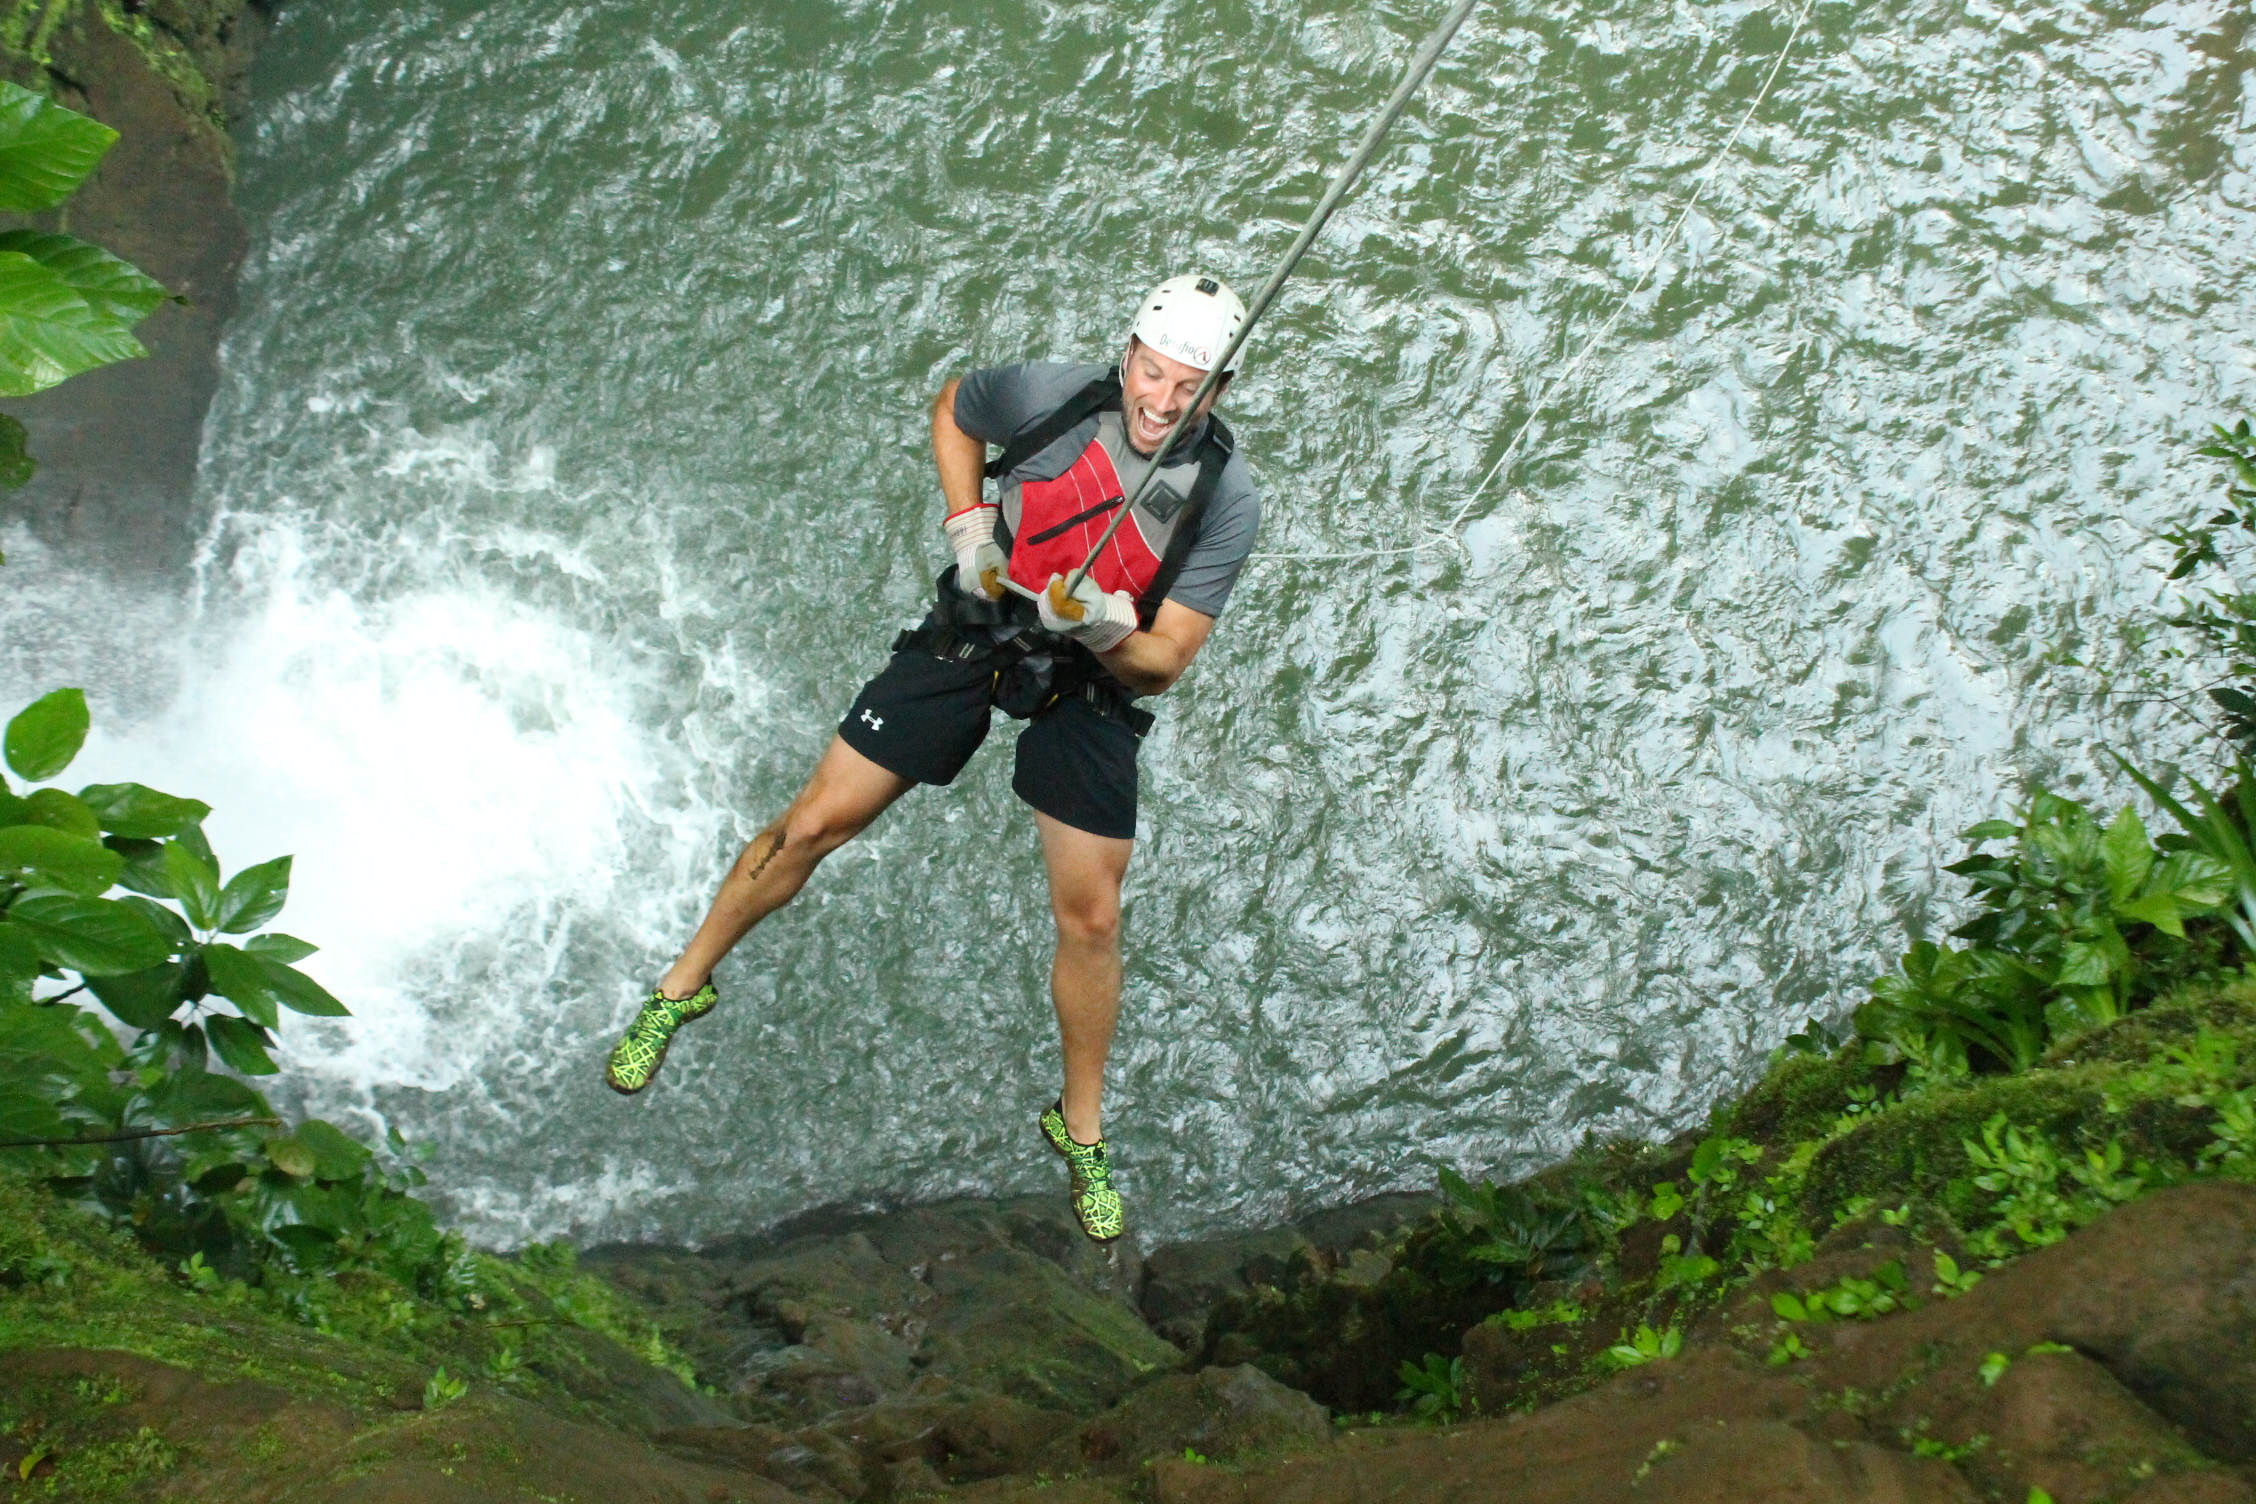 The most unique adventure activity in Costa Rica! One of the TOP activities in the world! Gravity Falls Waterfall Jumping